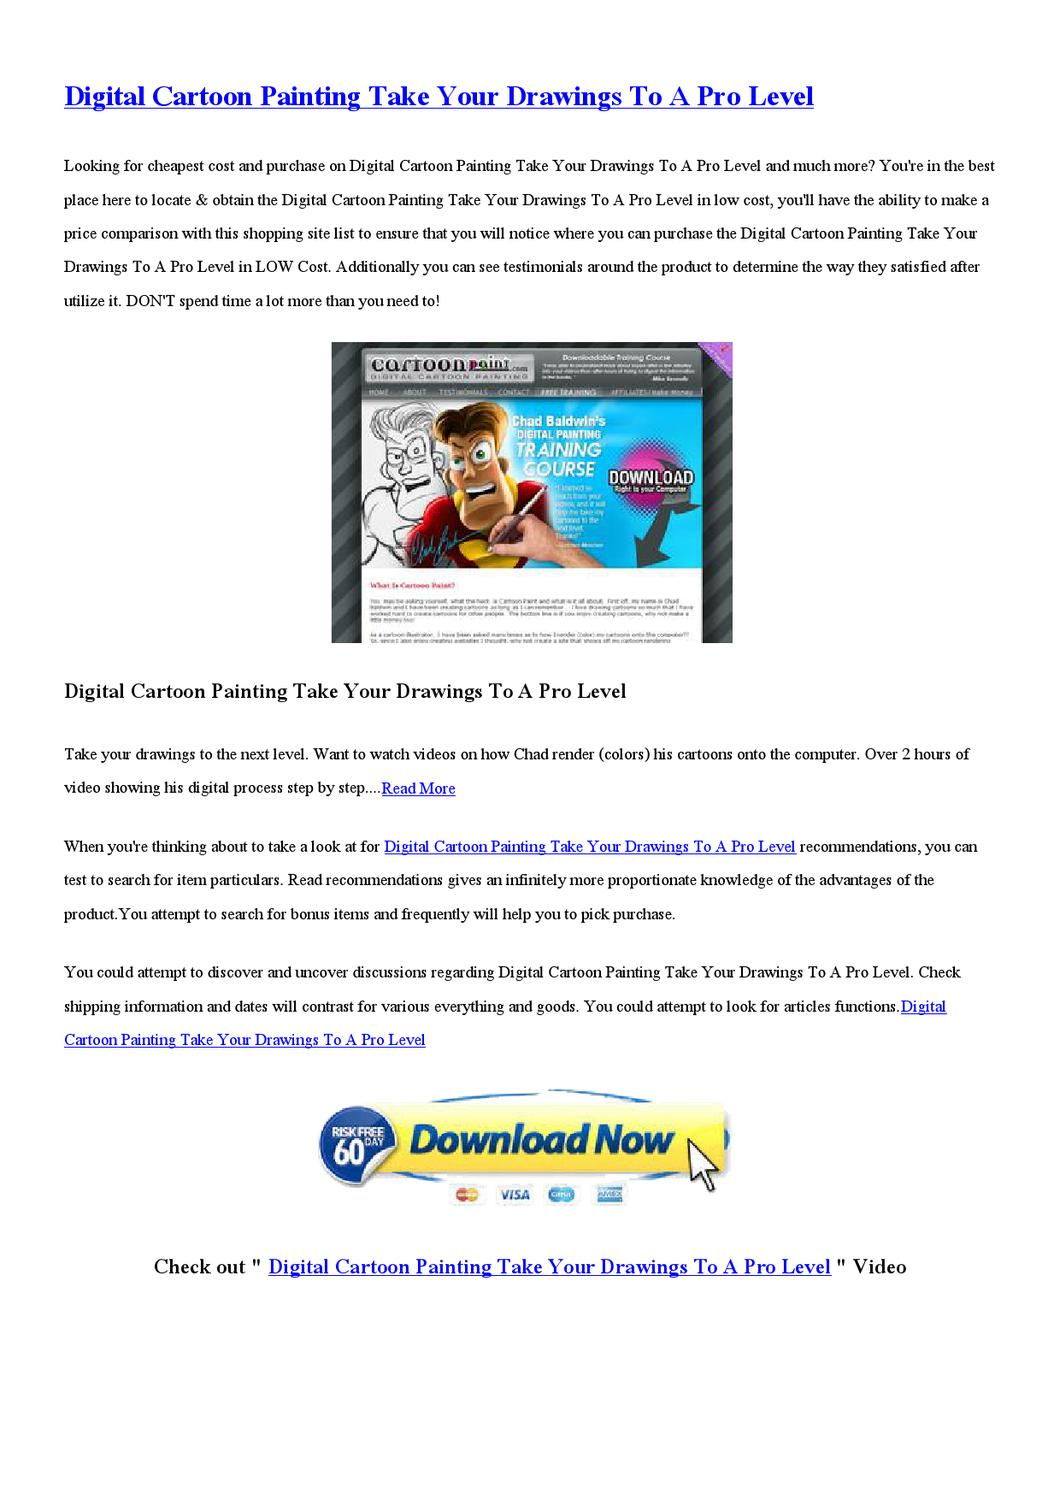 Digital cartoon painting take your drawings to a pro level